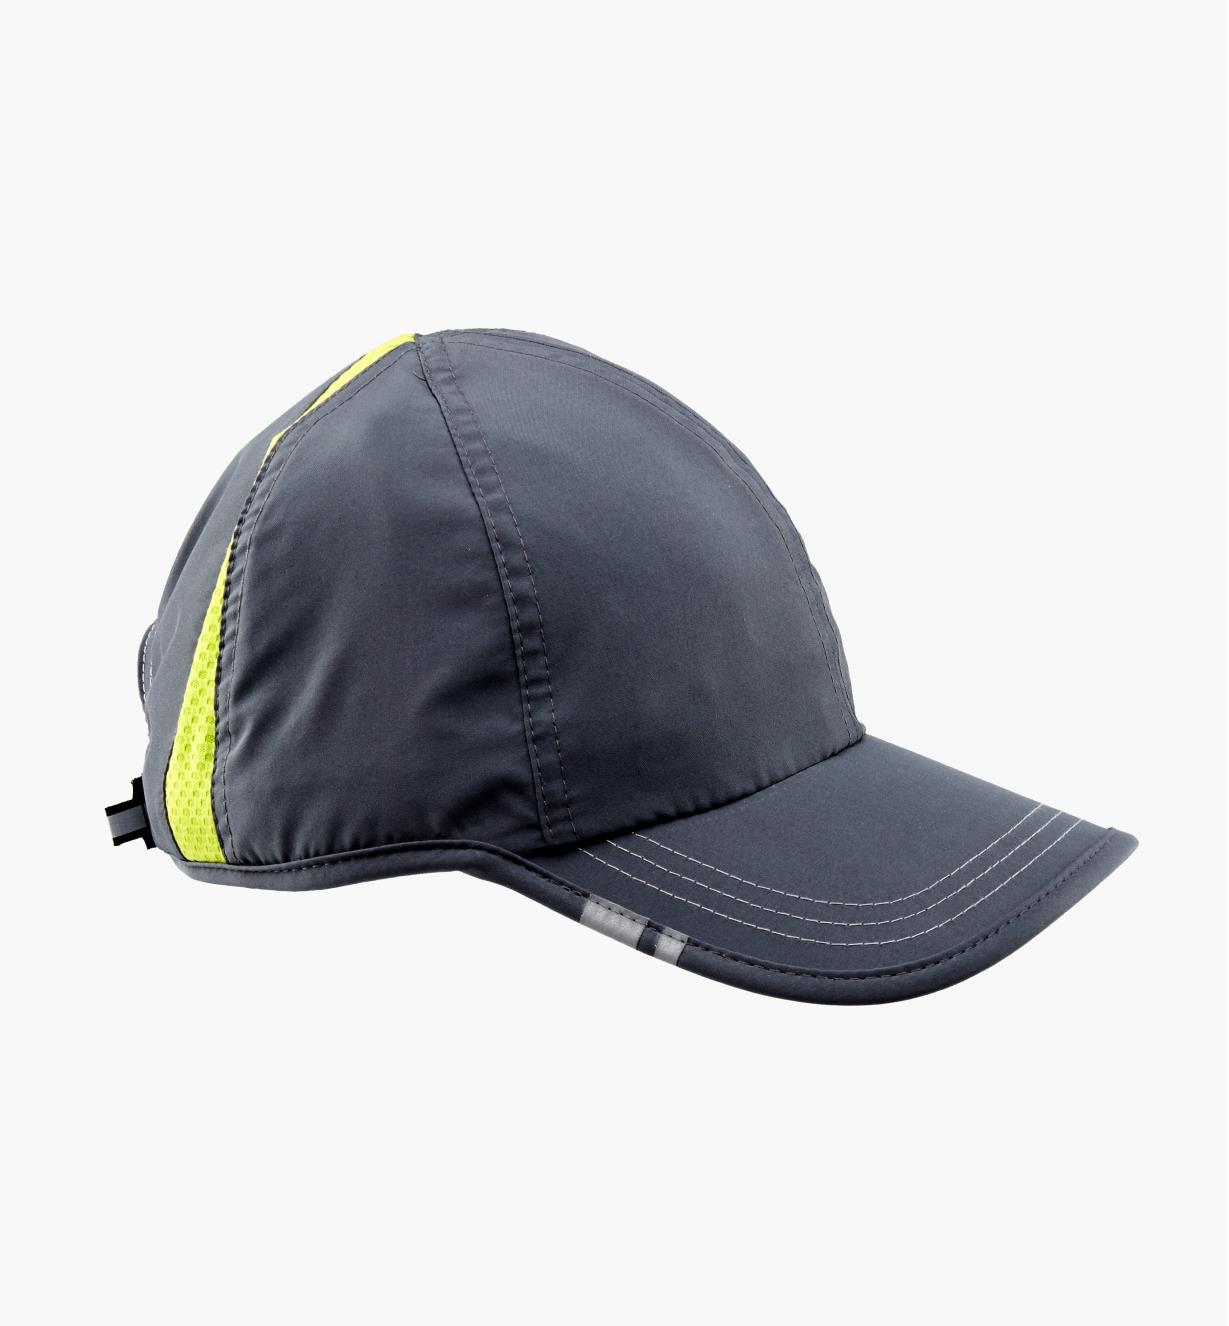 HL557 - Active Cap, Charcoal Gray